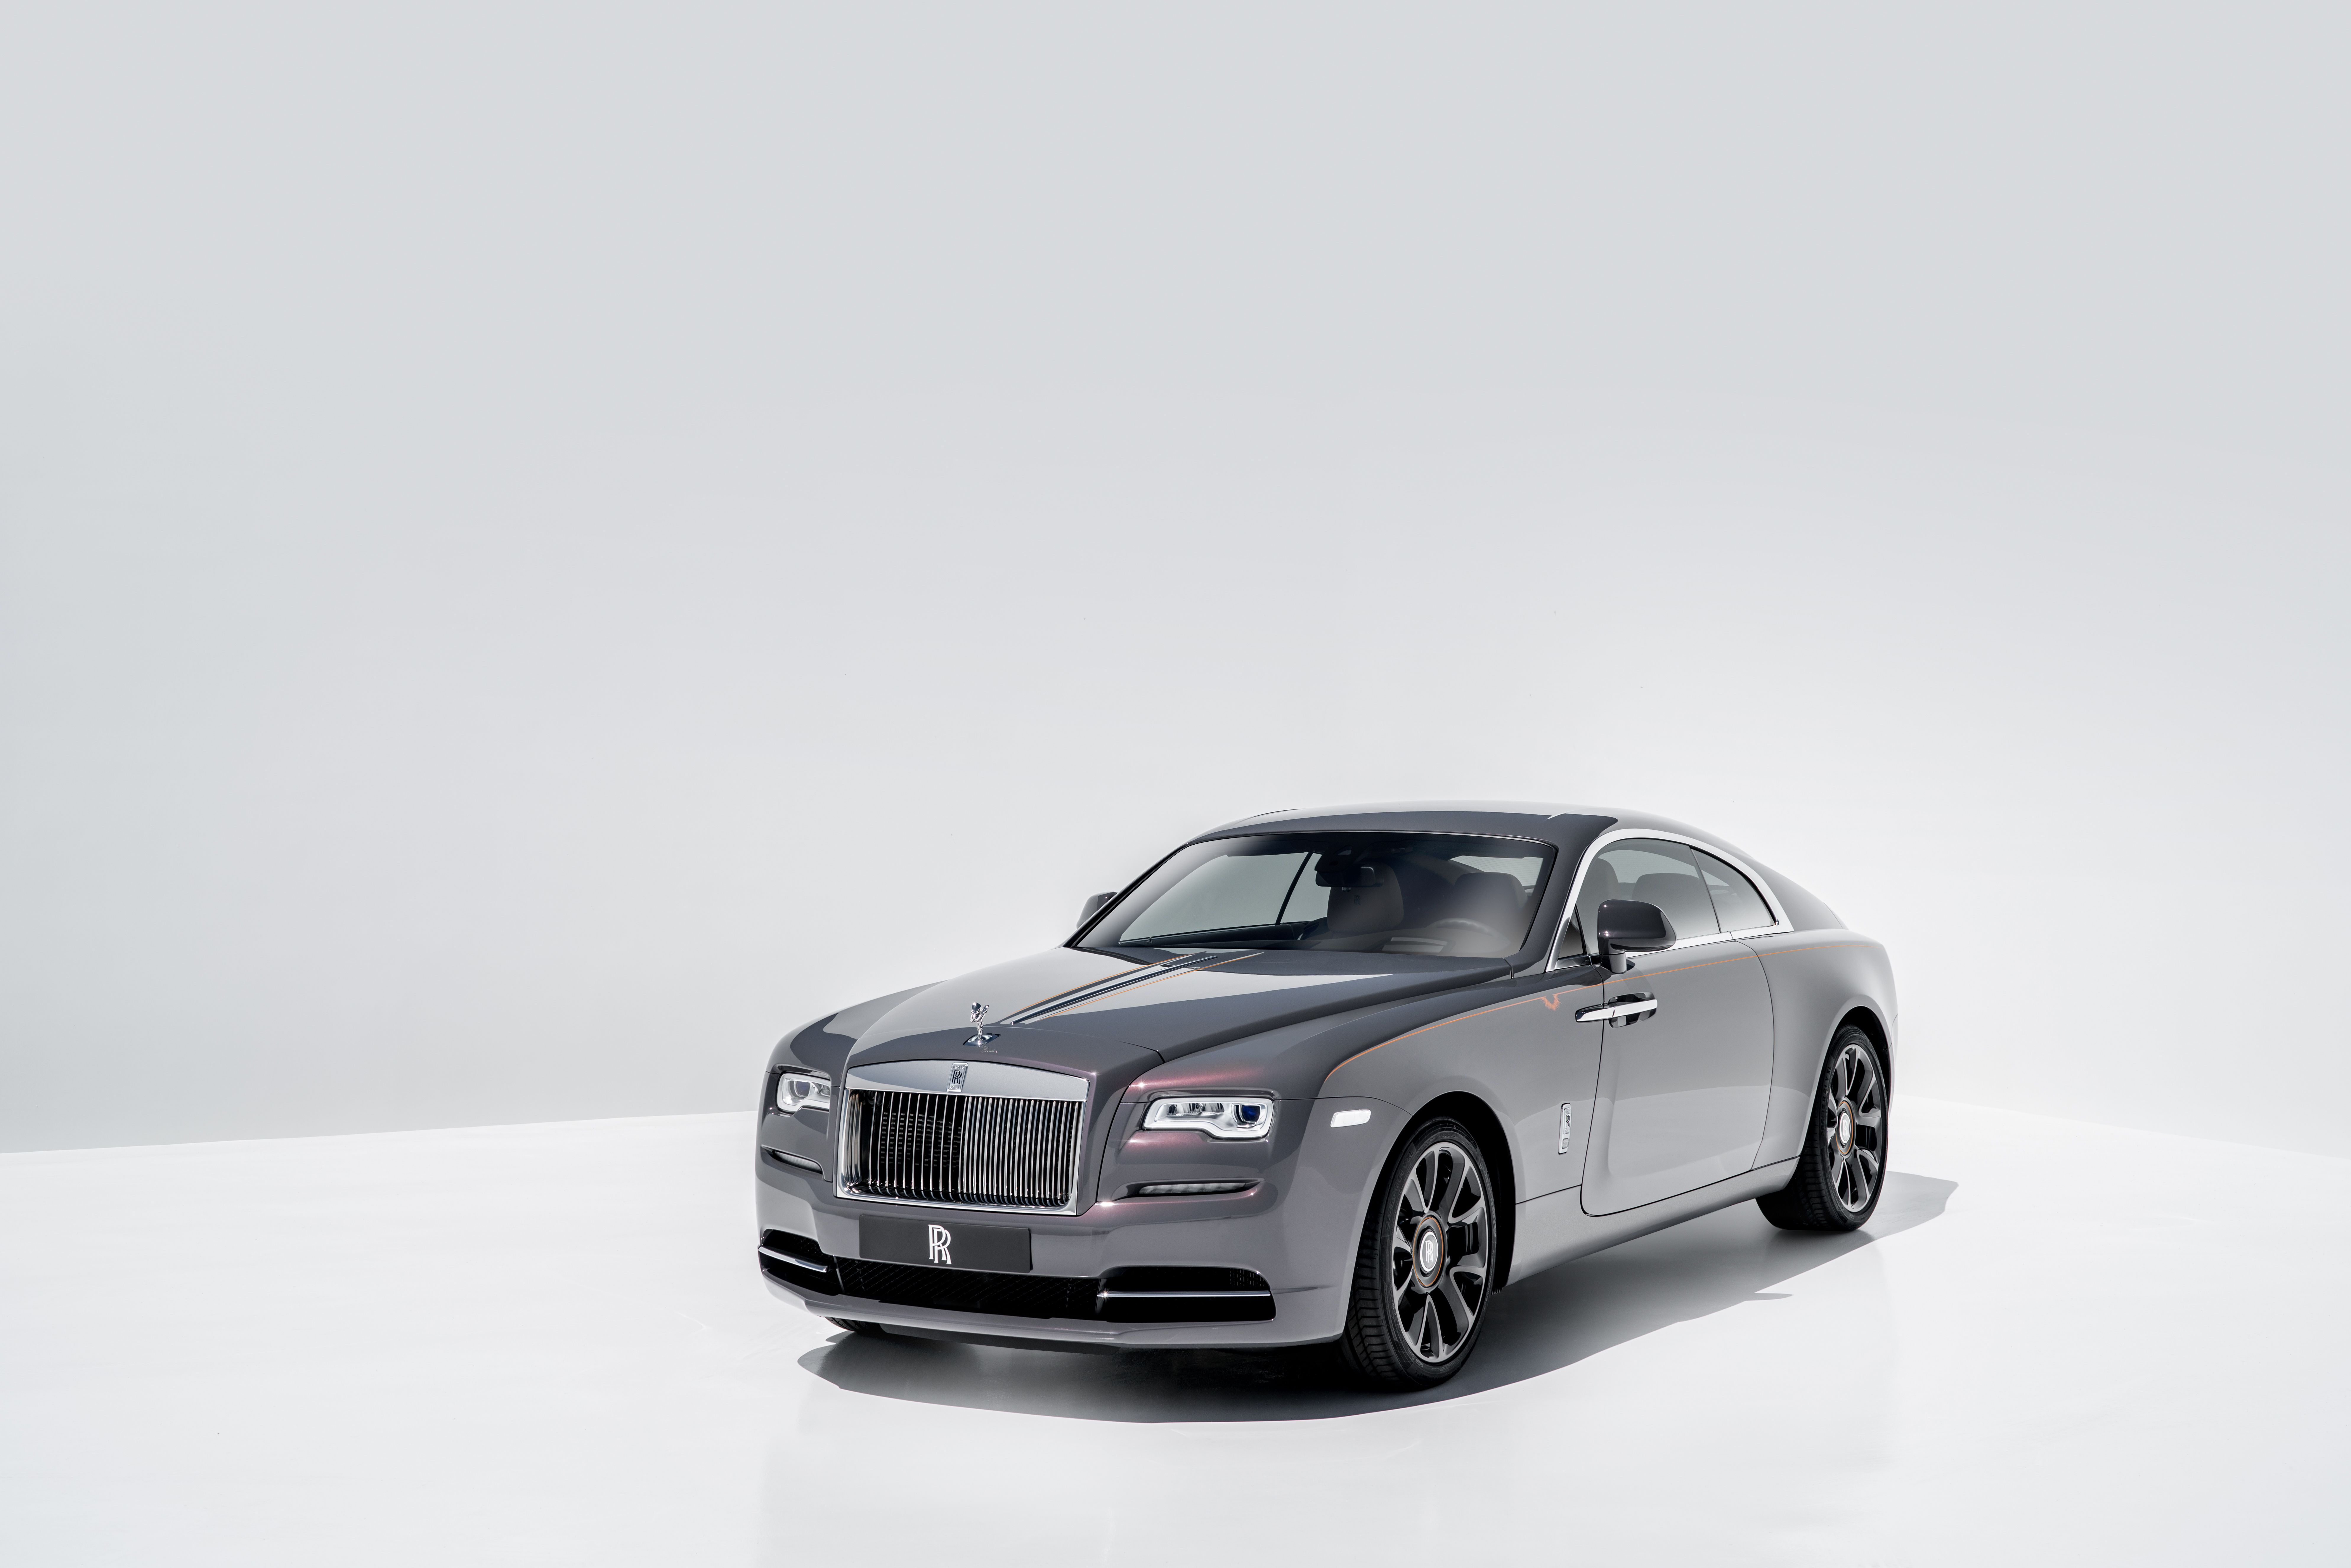 2020 Rolls Royce Wraith Review Pricing And Specs